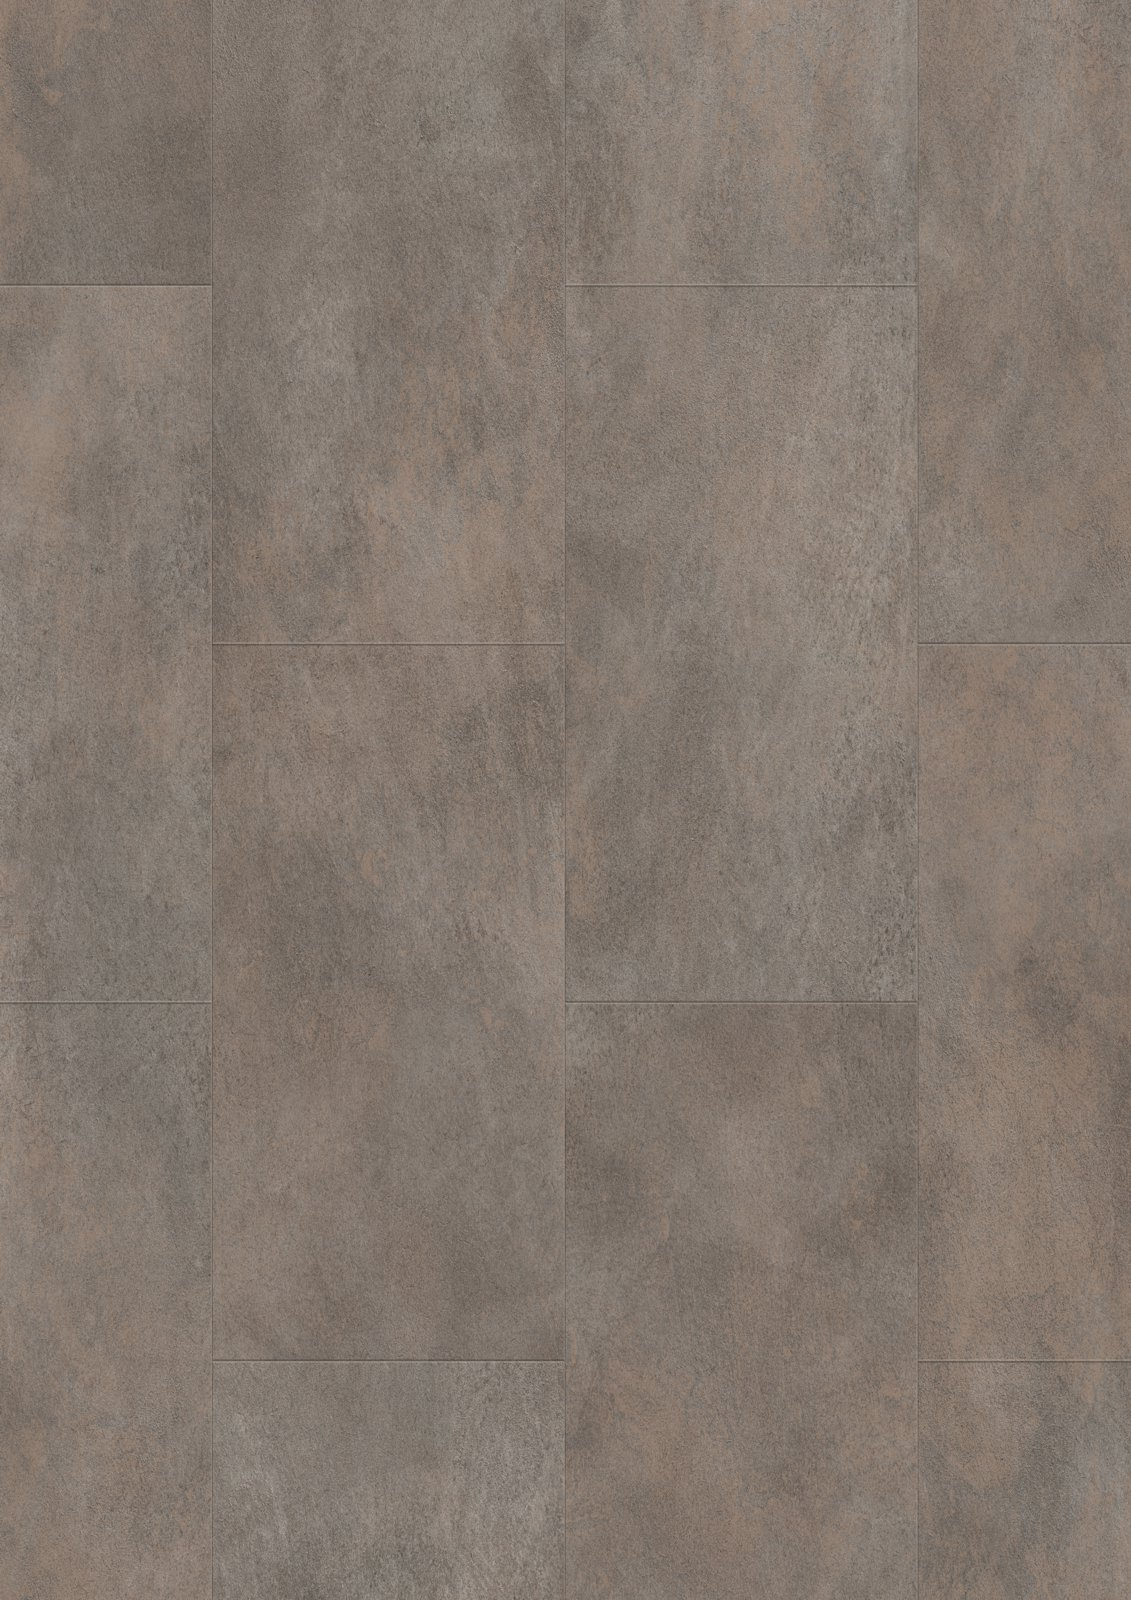 Vinyyli Pergo Optimum 1300x320x4,5 mm Oxidized Metal Concrete laatta 4V